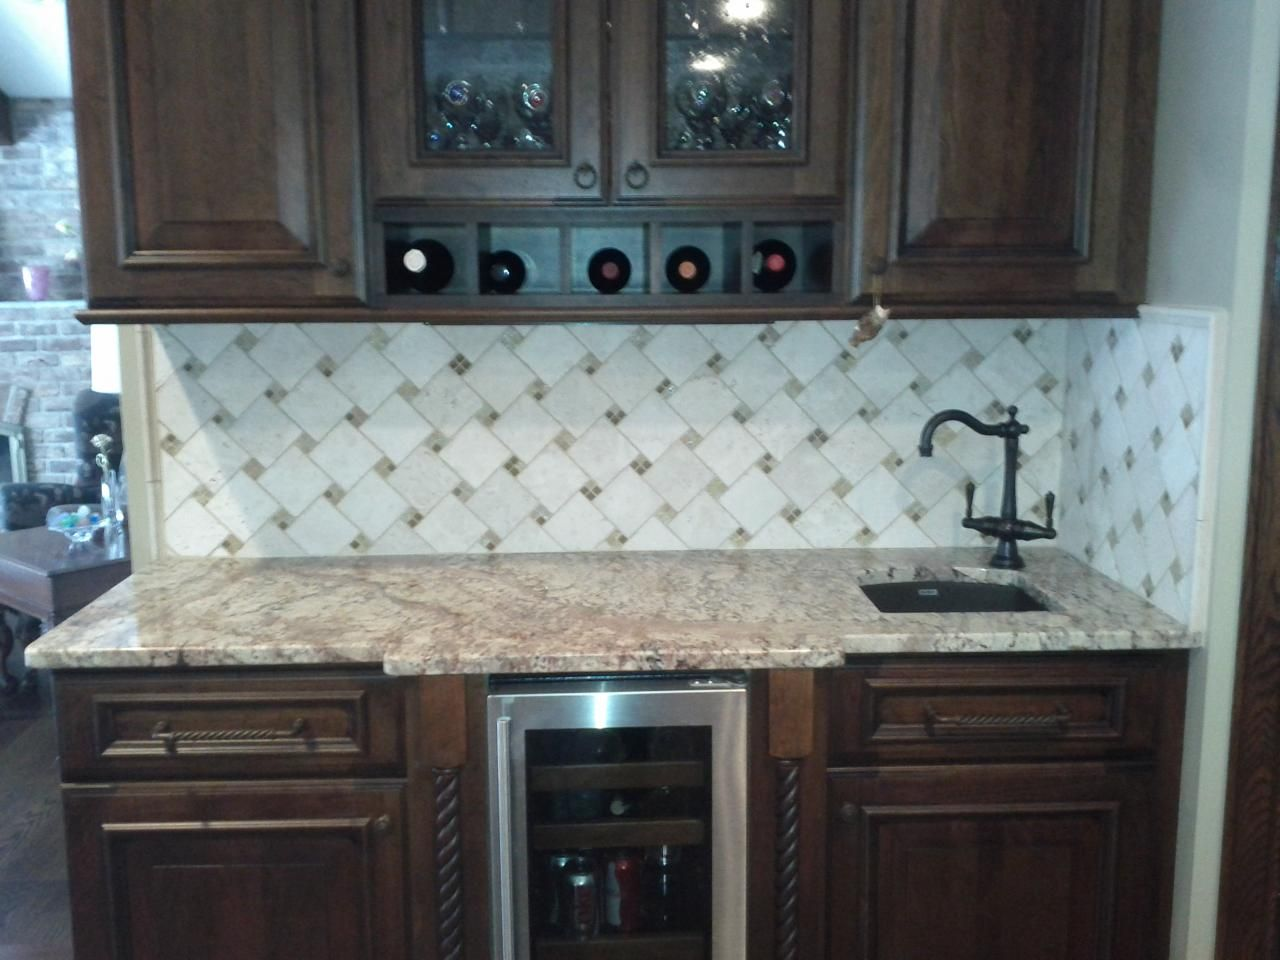 kitchen tile backslash backsplash kitchen 10 best images about kitchen tile backslash on Pinterest Kitchen backsplash design Marbles and Kitchen backsplash